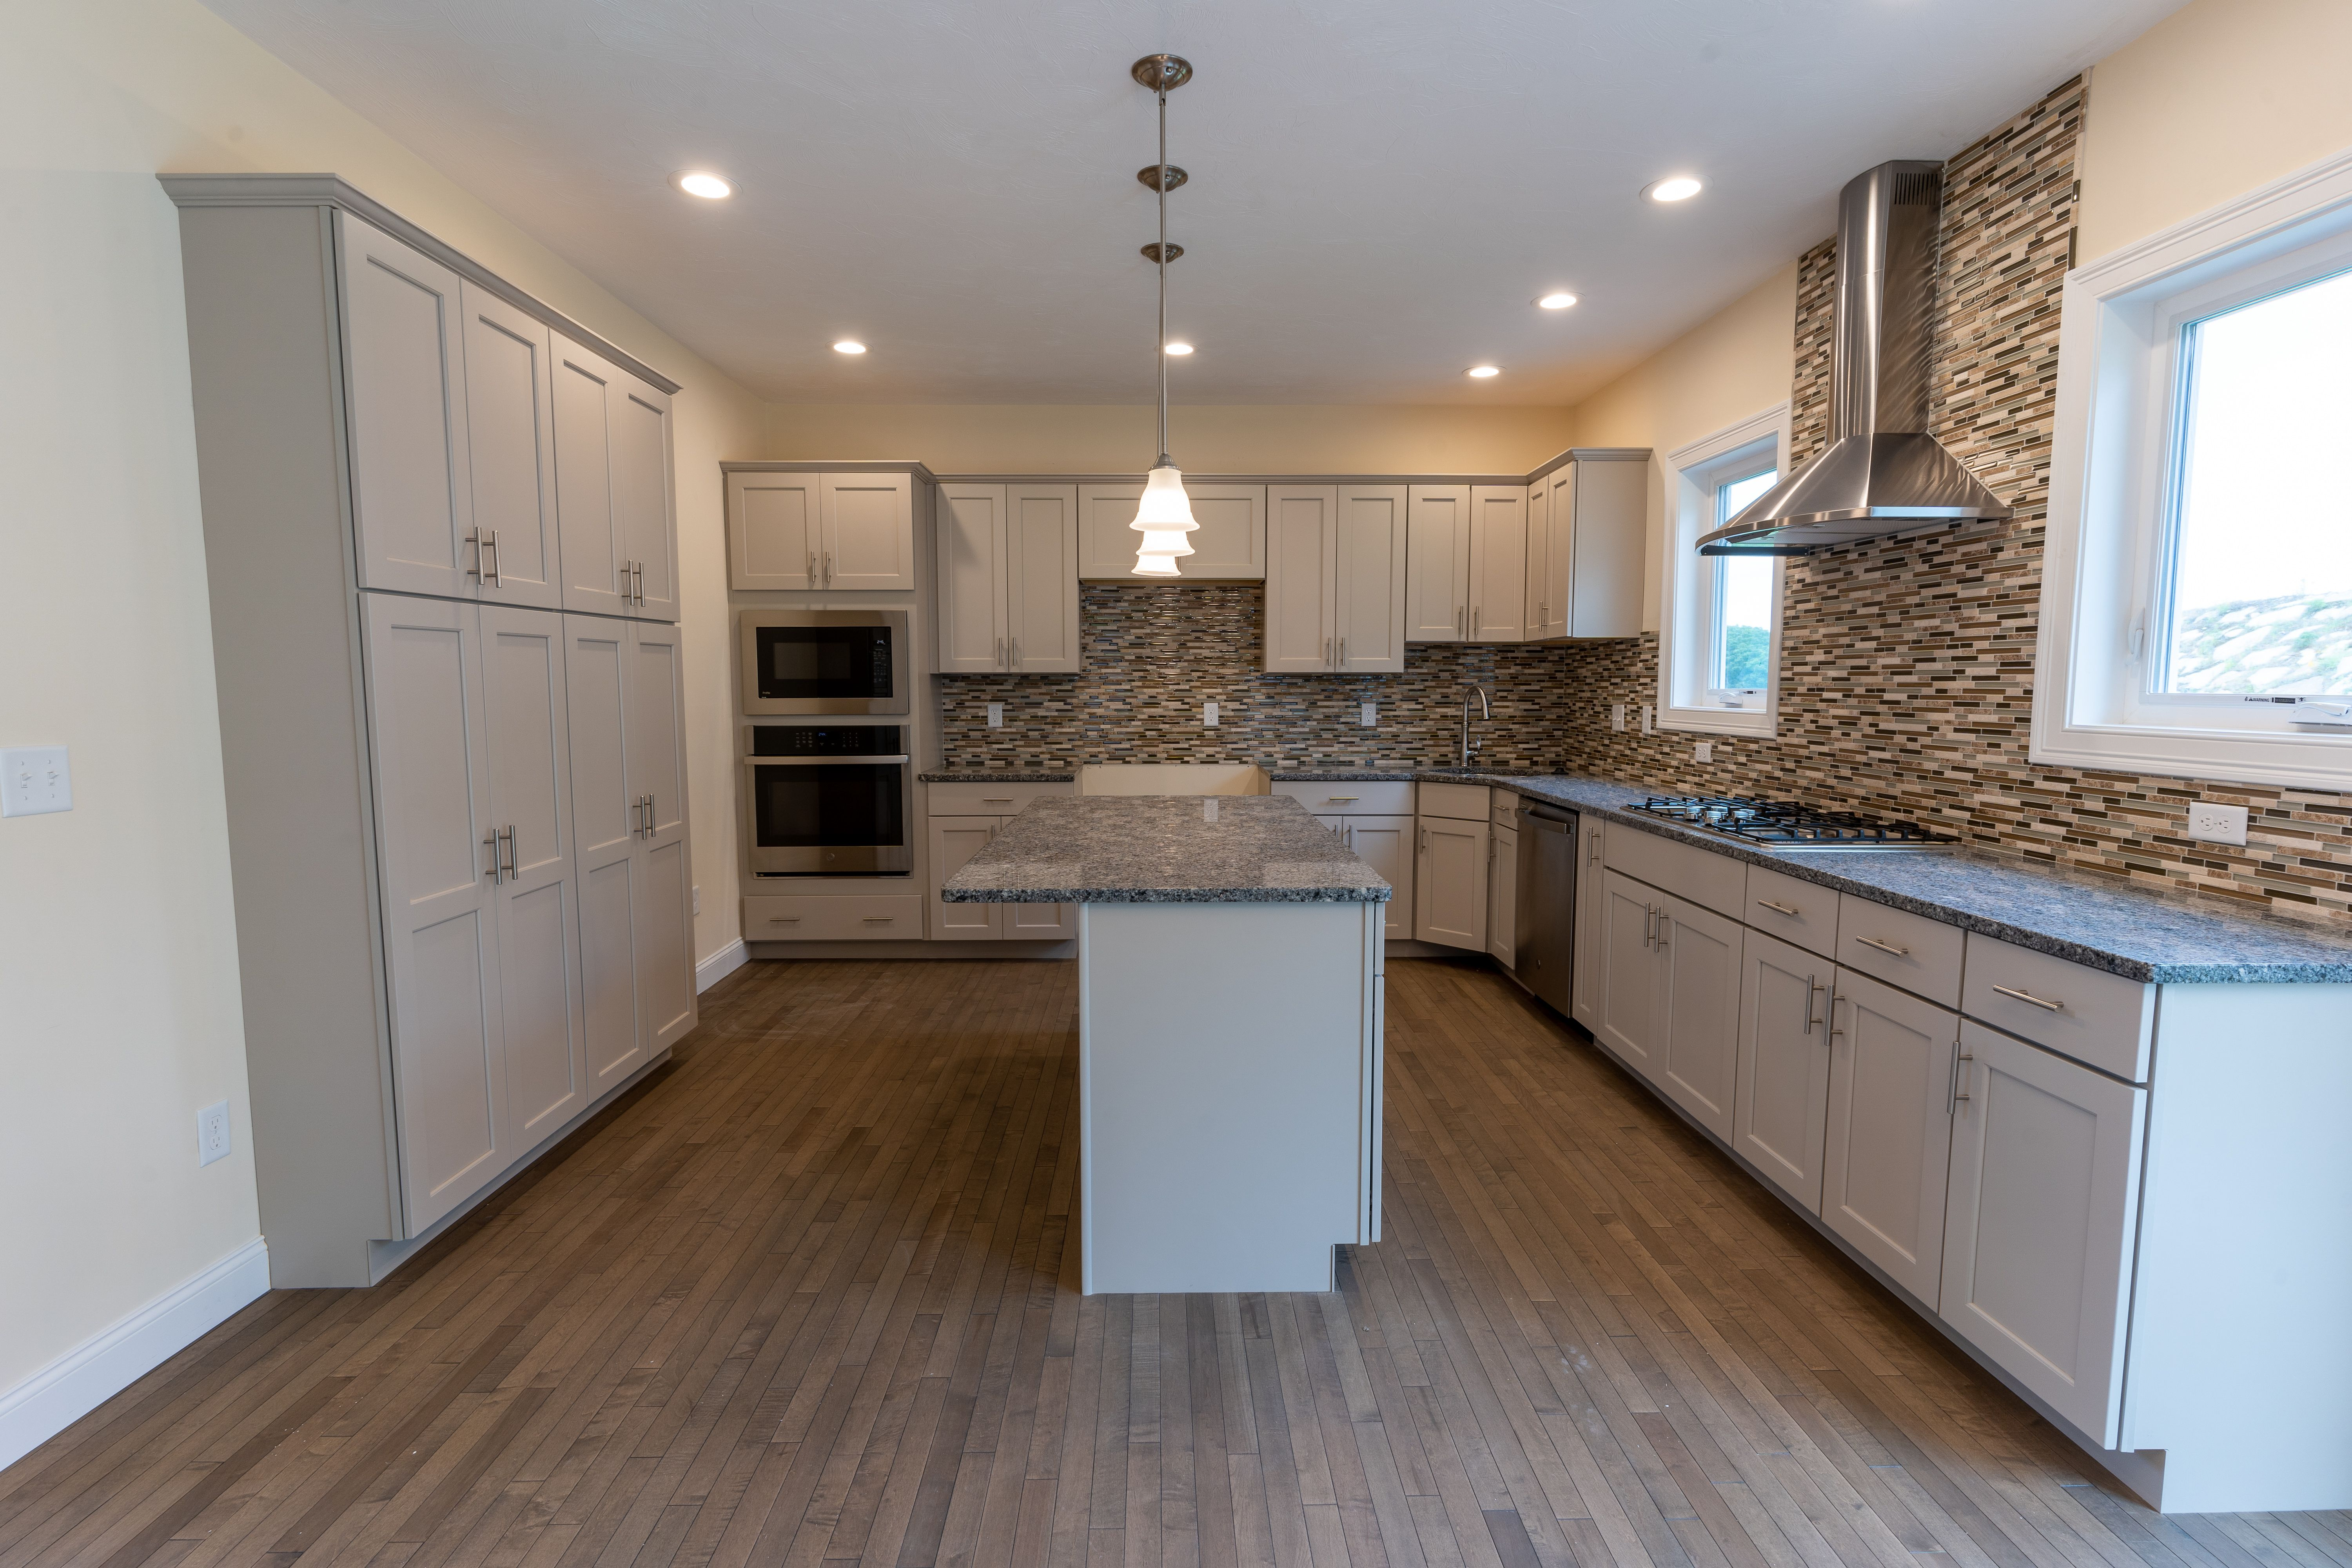 Kitchen featured in The Sovereign Standard By Fafard Real Estate in Boston, MA